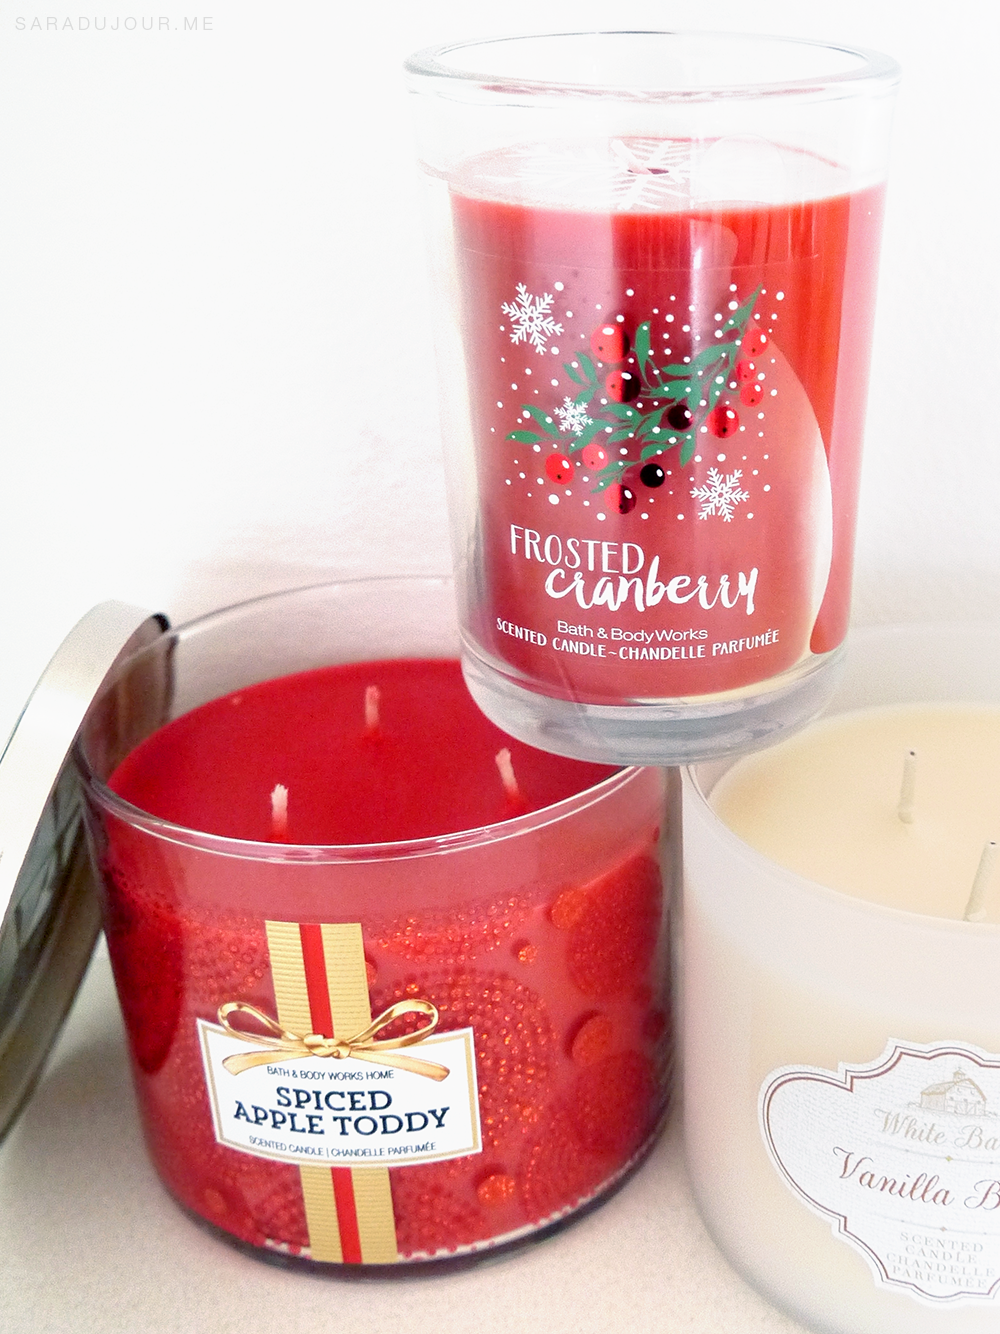 Bath and Body Works Holiday Candle Haul | Sara du Jour